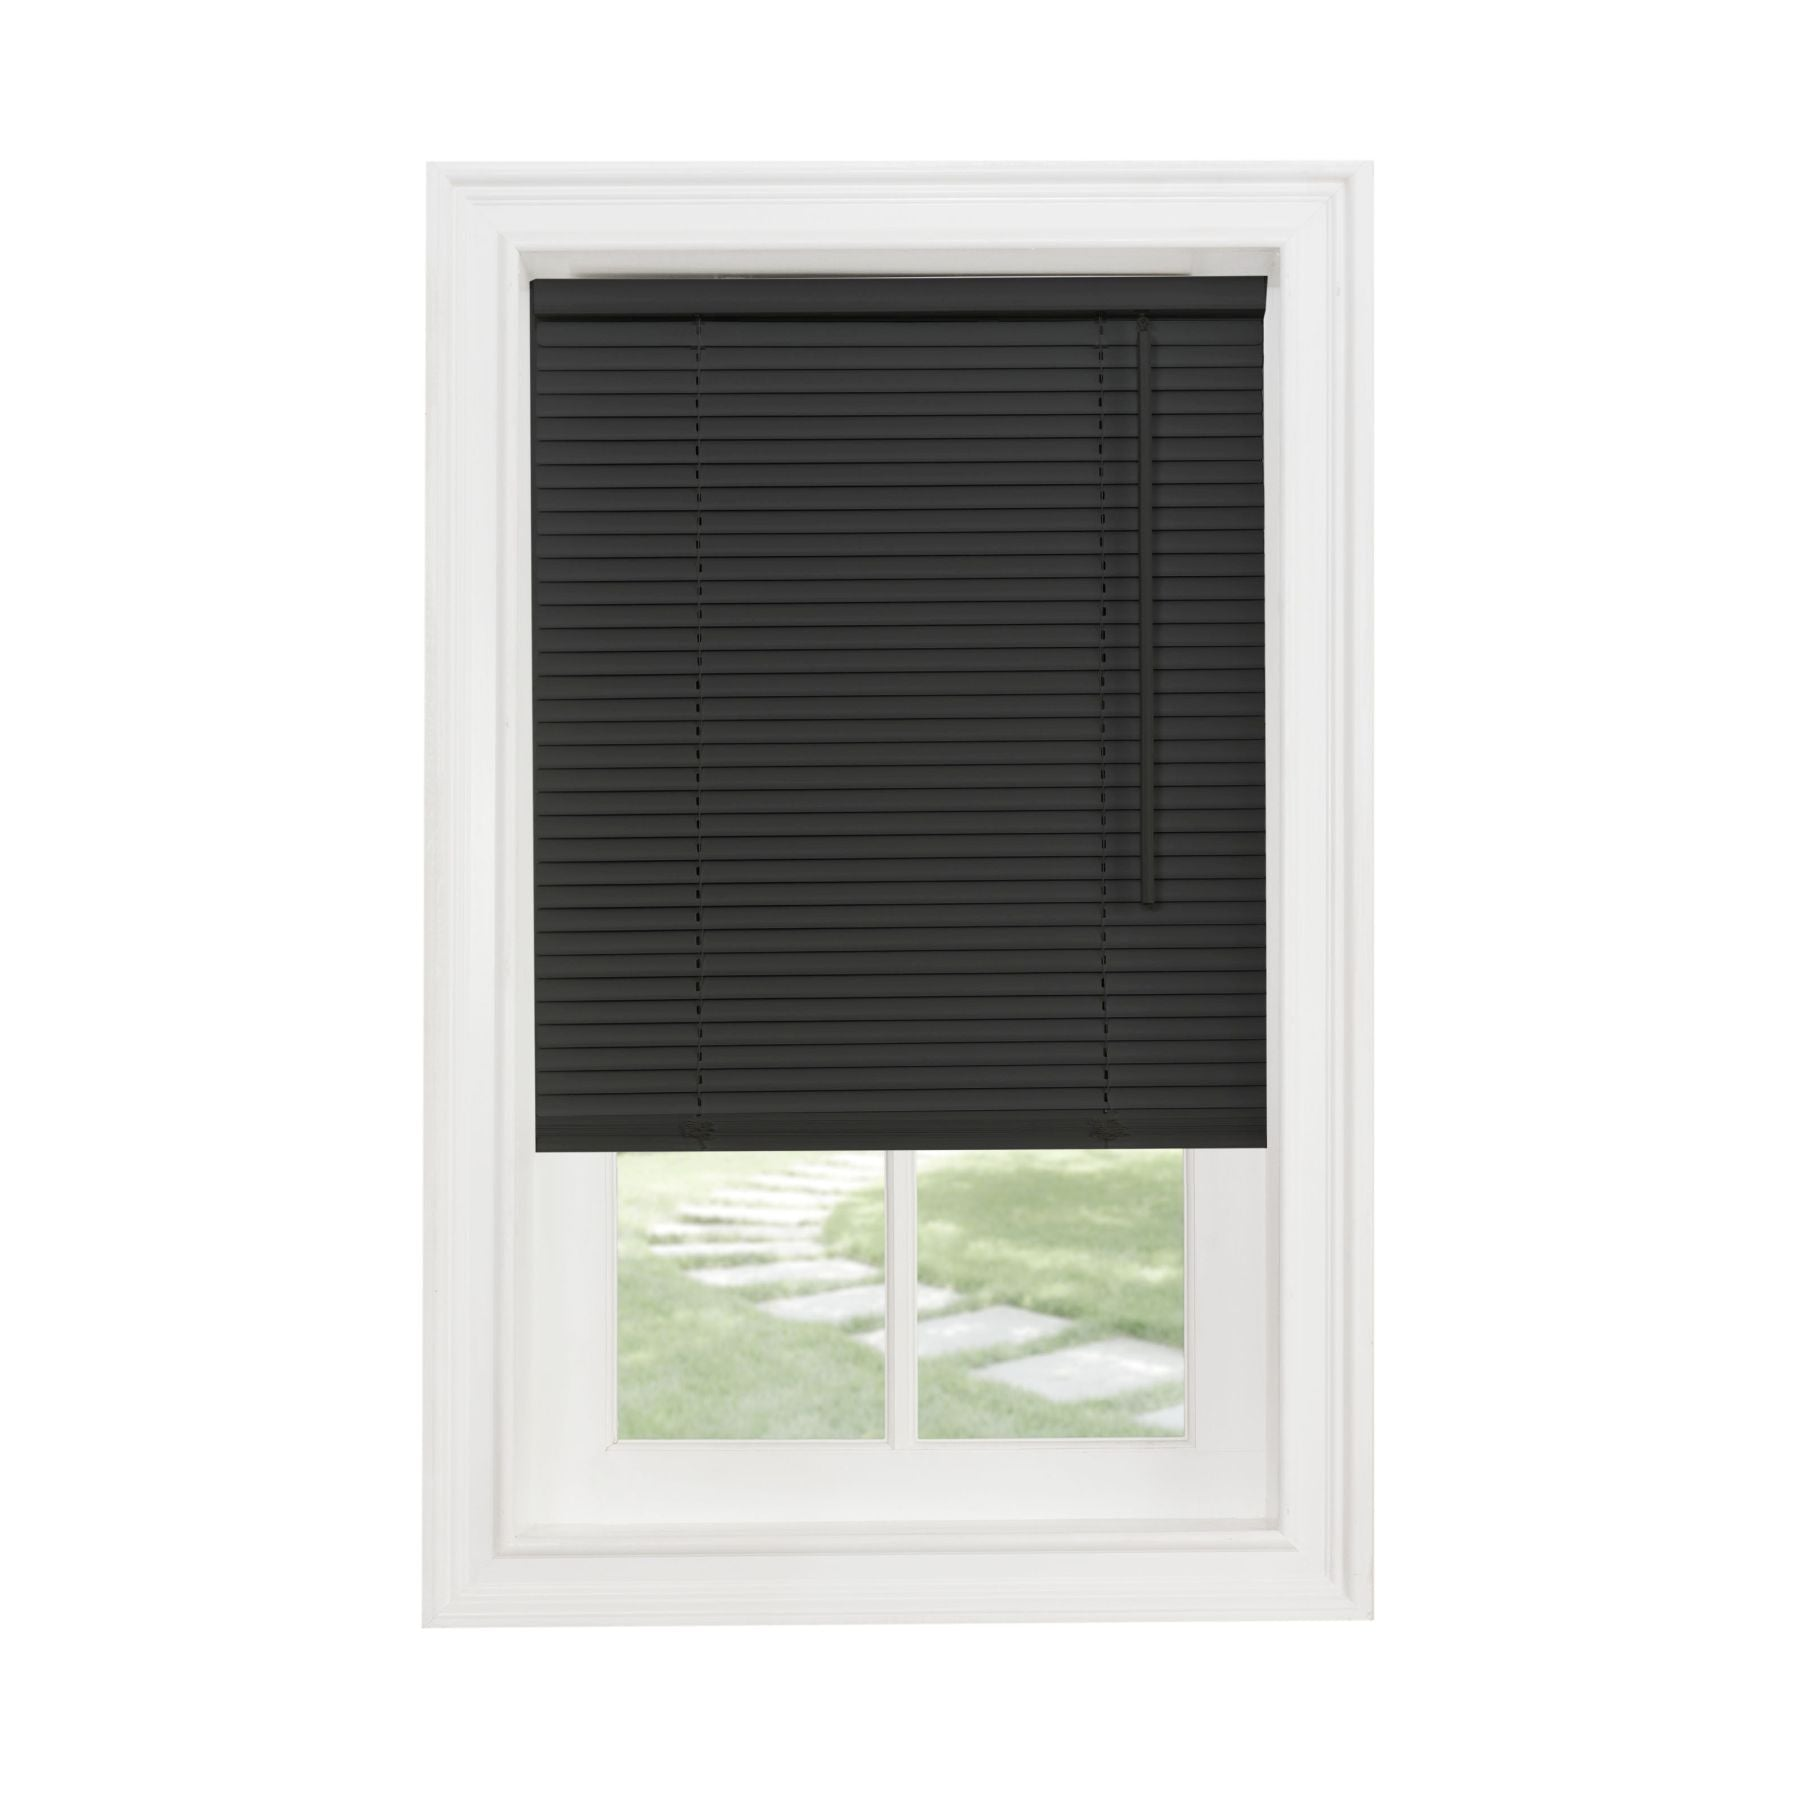 "Traditional Elegance Cordless Sunrise 1"" Light Filtering Mini Blind 30x64 - Black"